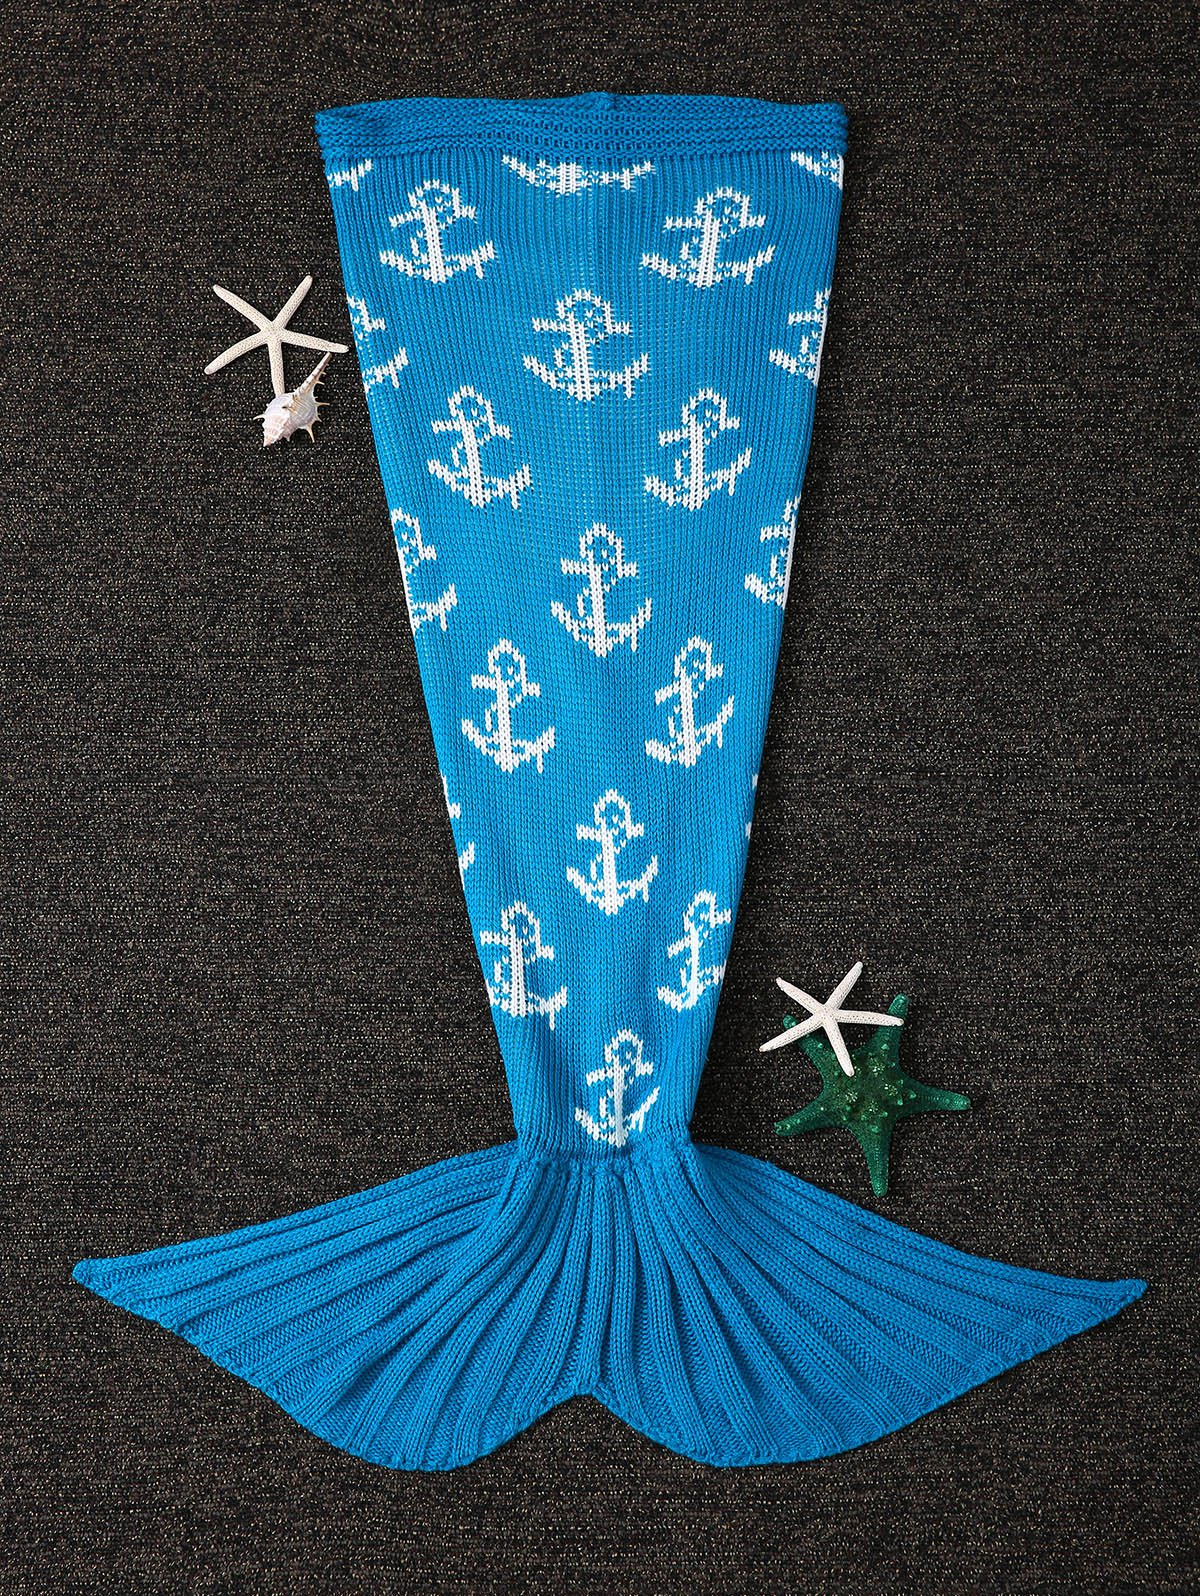 Soft Anchor Design Knitting Mermaid Tail Shape Blanket - BLUE